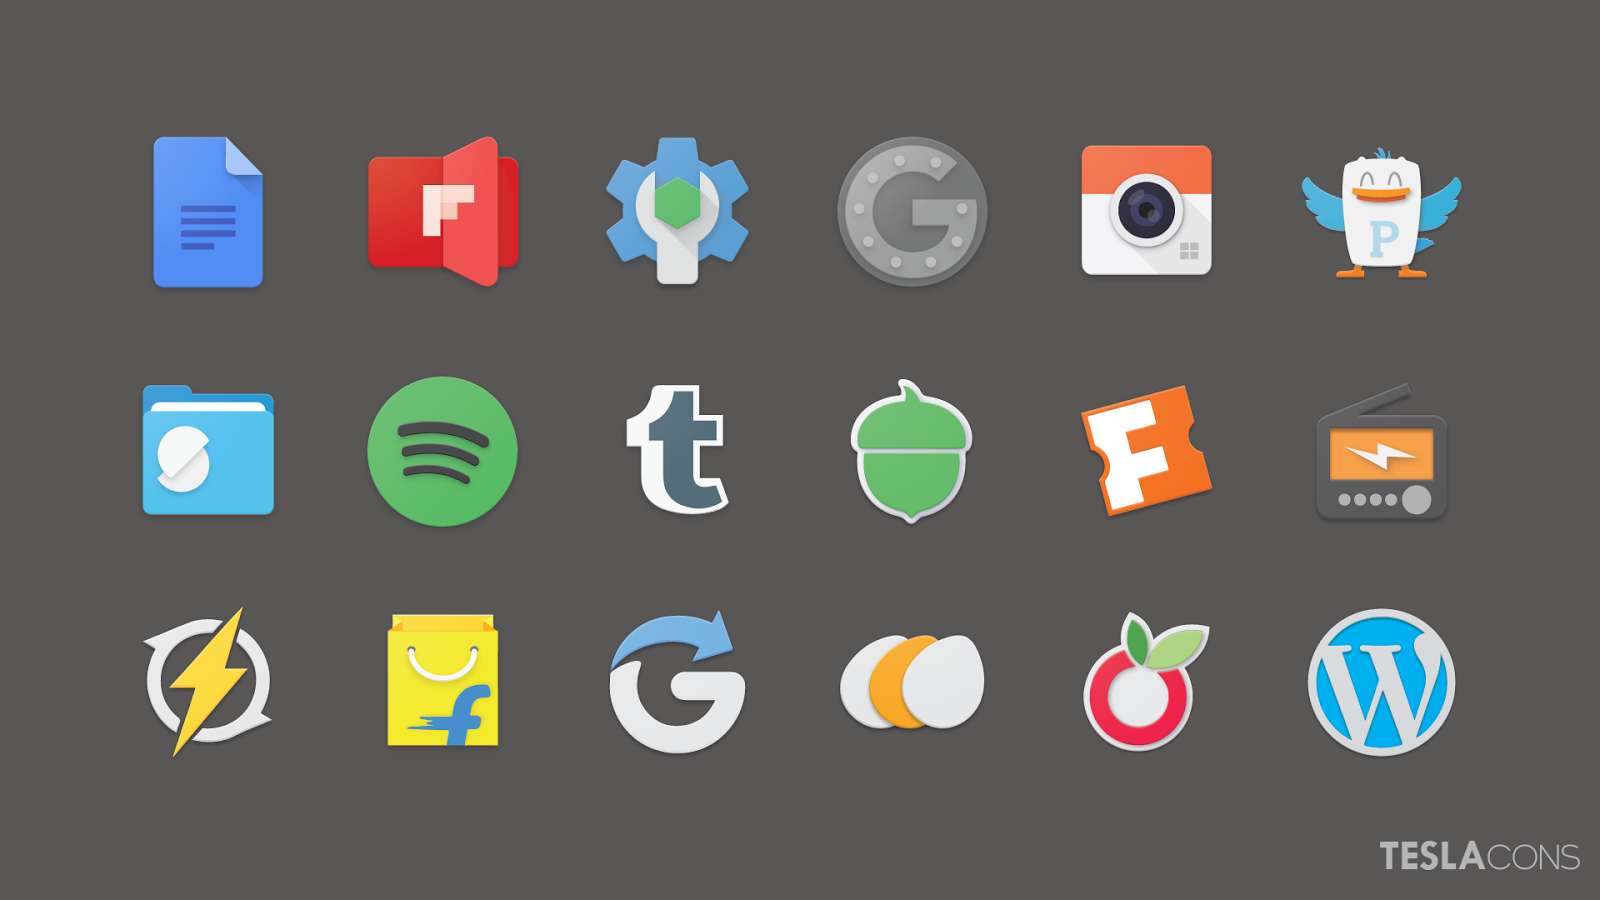 Teslacons Icon Pack Screenshot 5